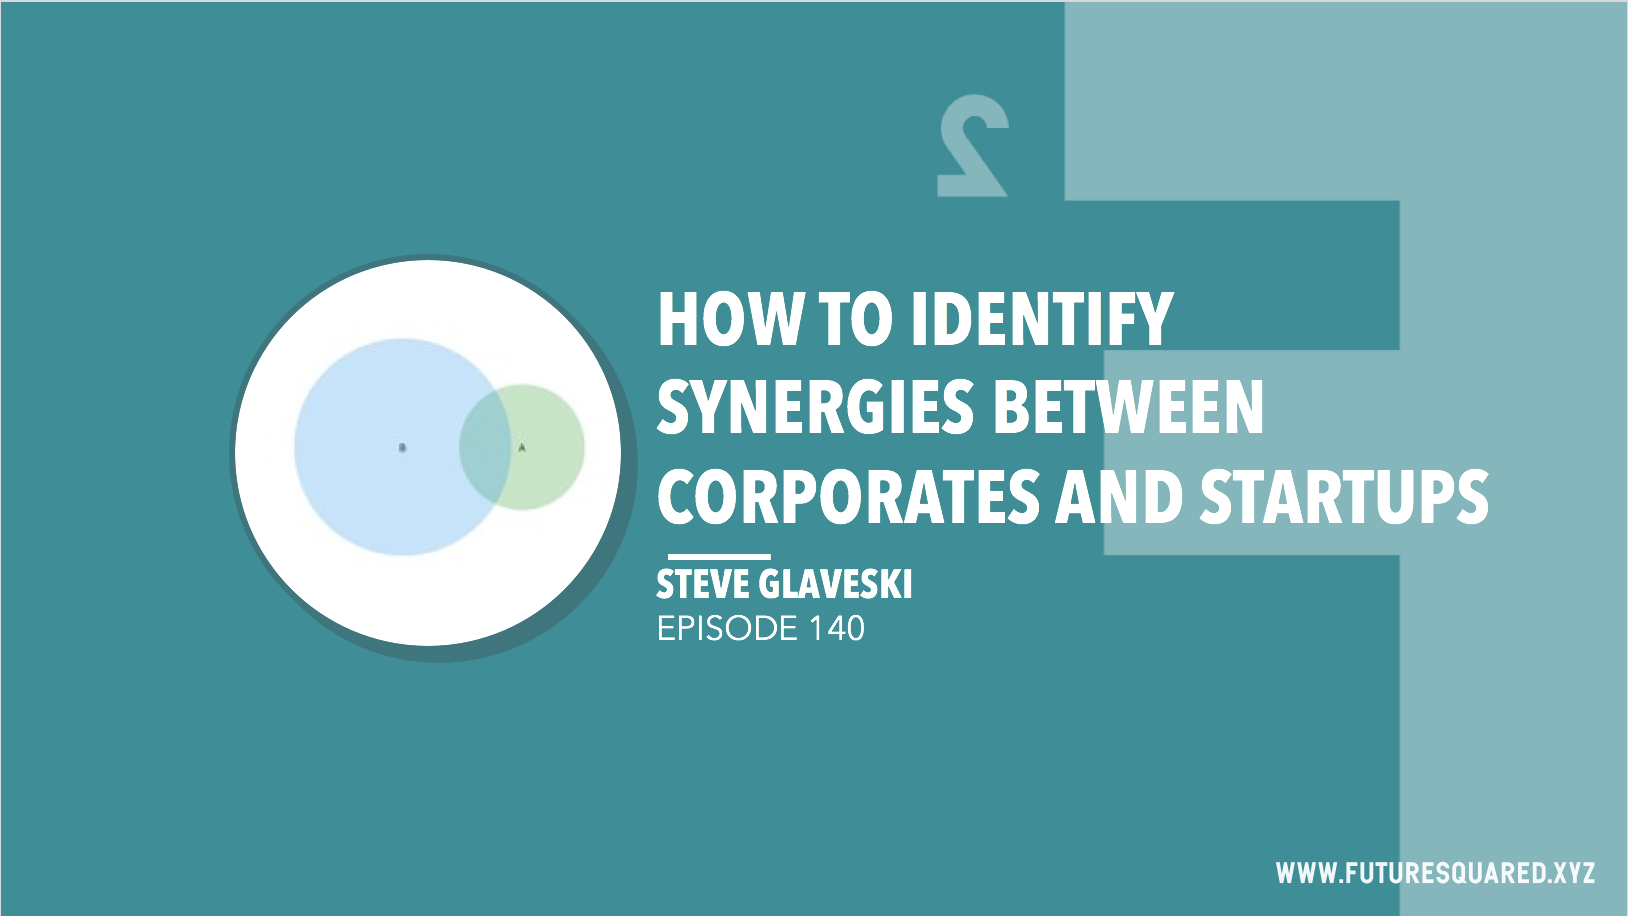 Future Squared Episode #140: How to Identify Synergies between Corporates and Startups